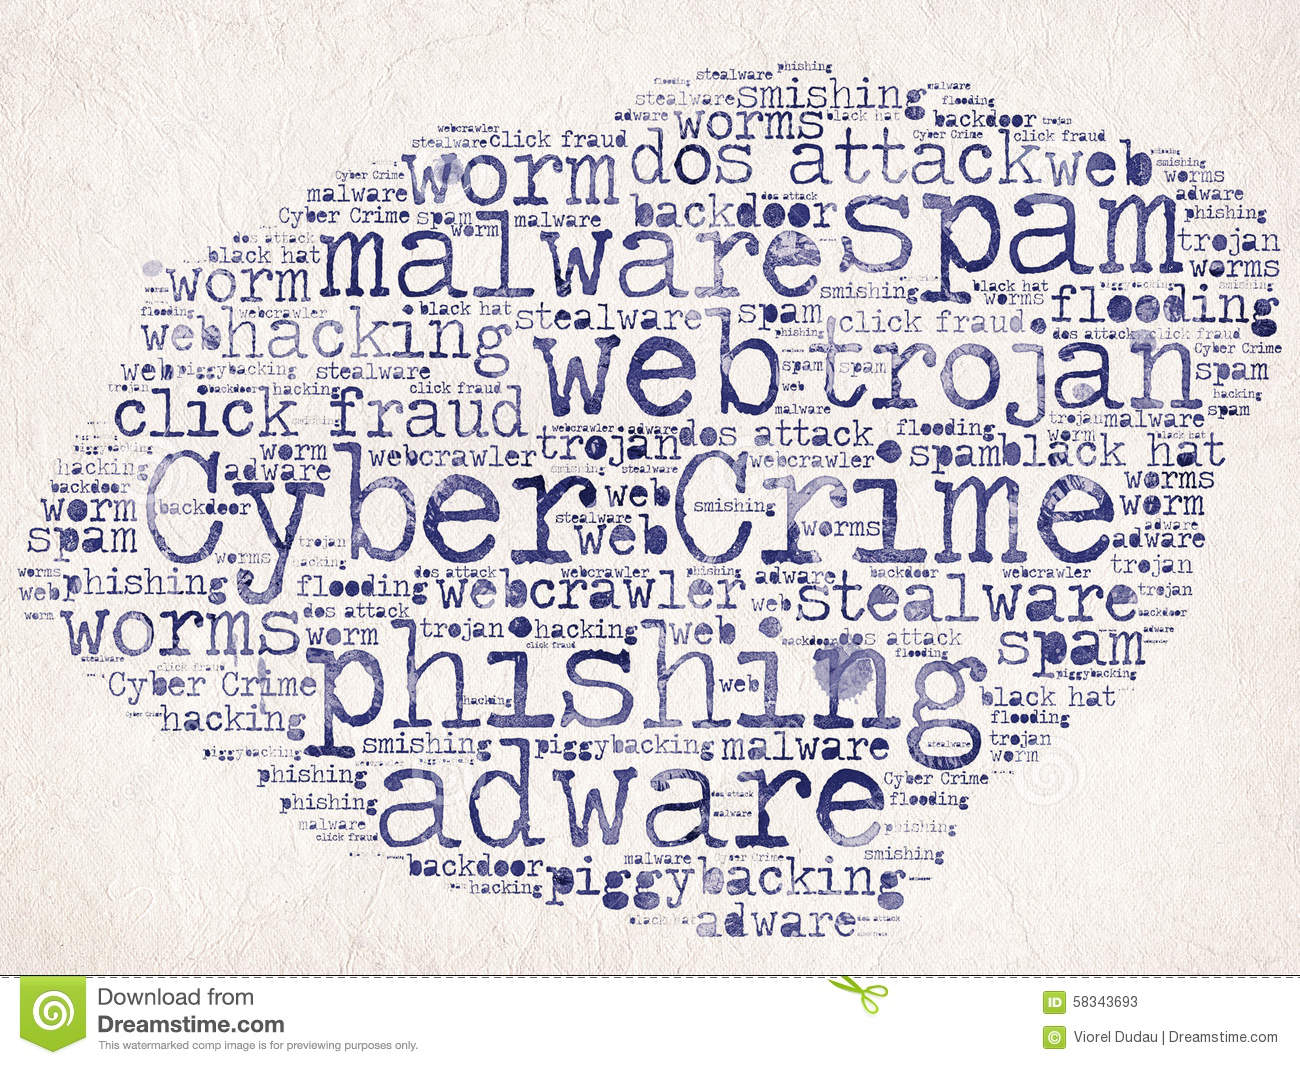 An Essay On Cyber Crimes at newschoolessay.pl